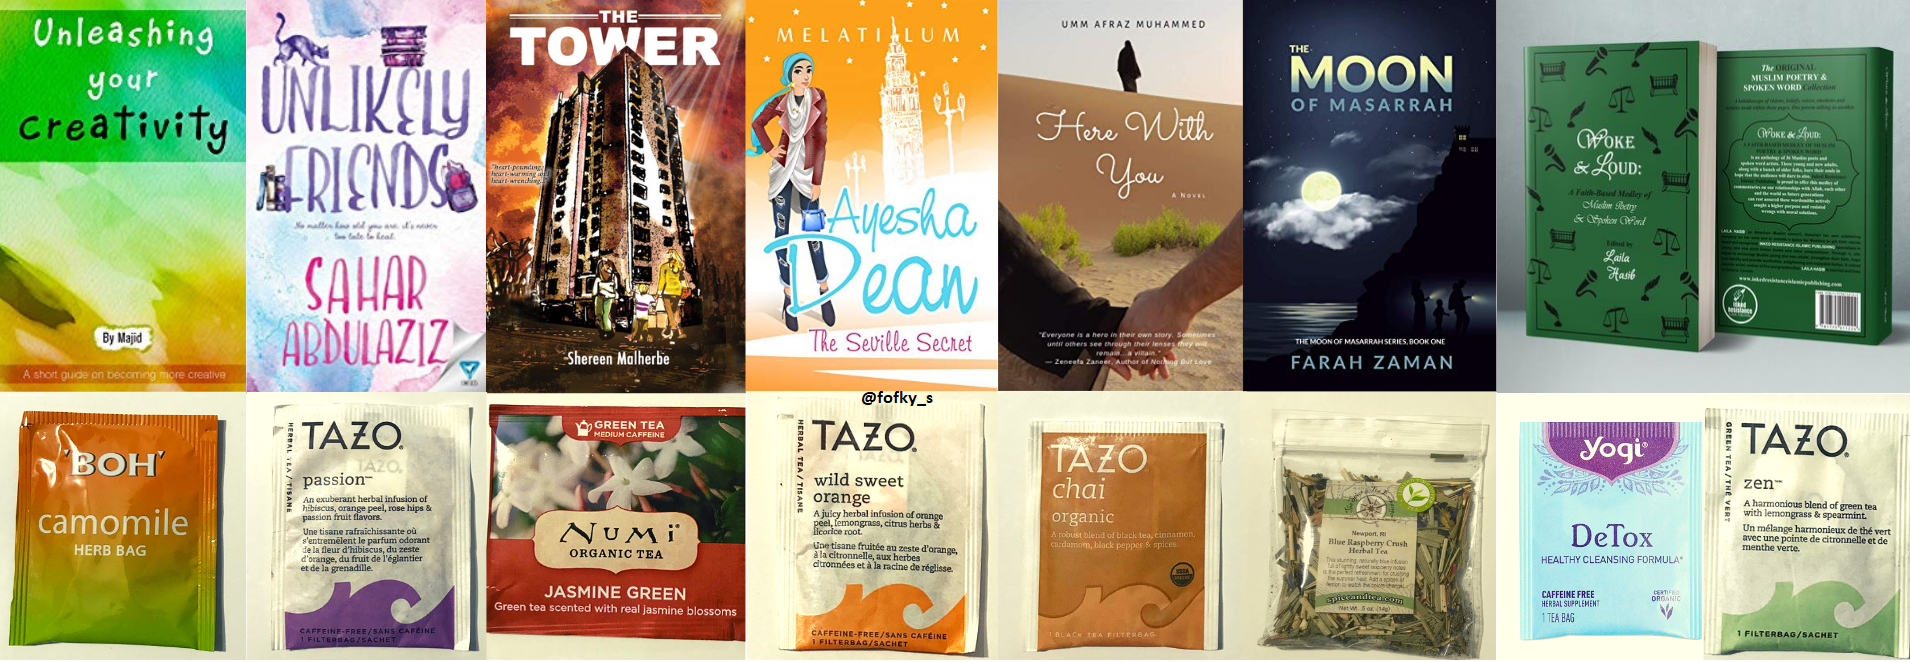 book and tea pairing banner cr.png